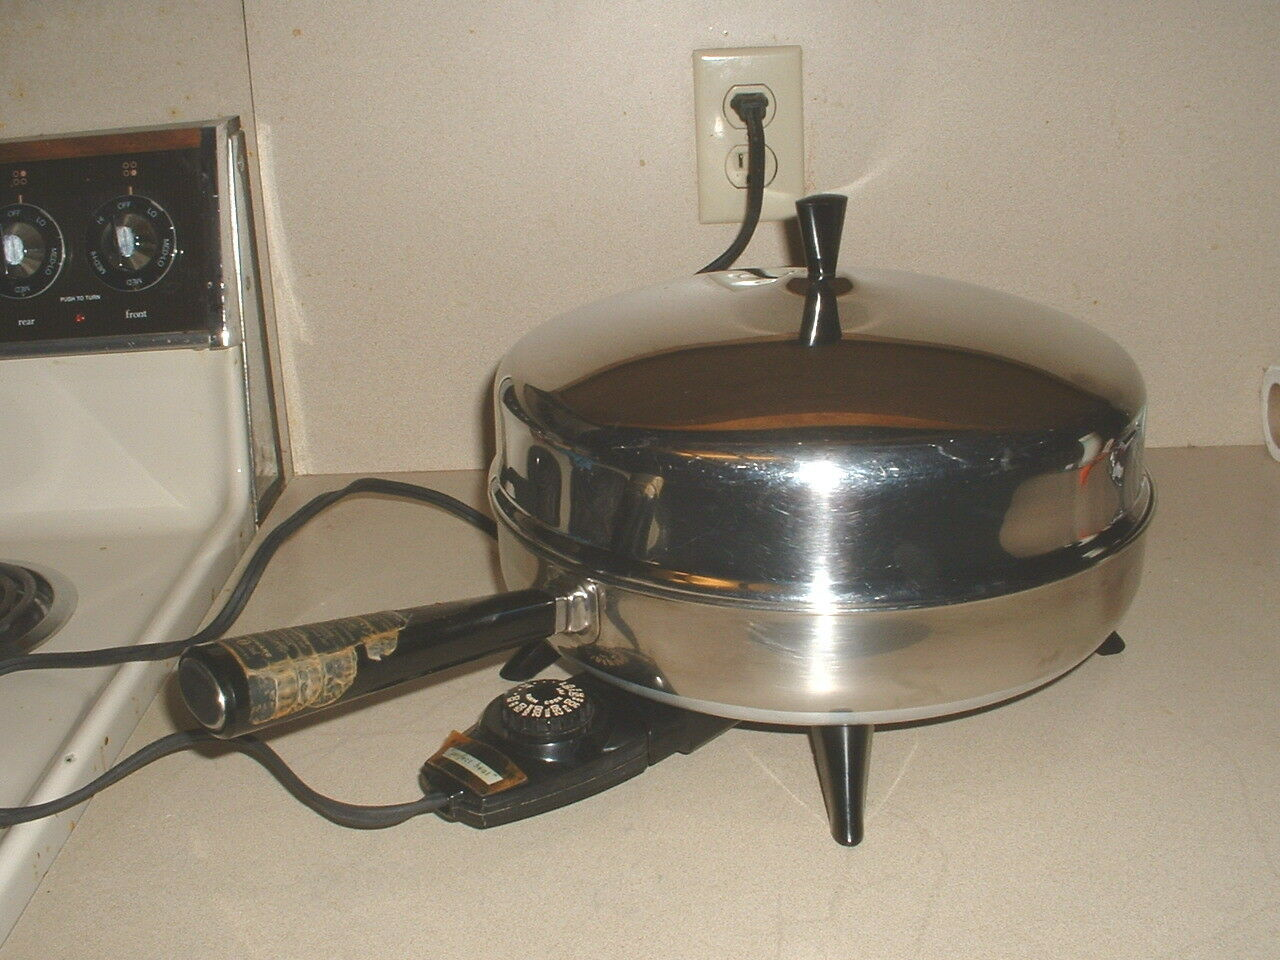 Couleurrware Stainless Electric Fry Pan Skillet w Dome Lid & 3 Piece Steamer Set